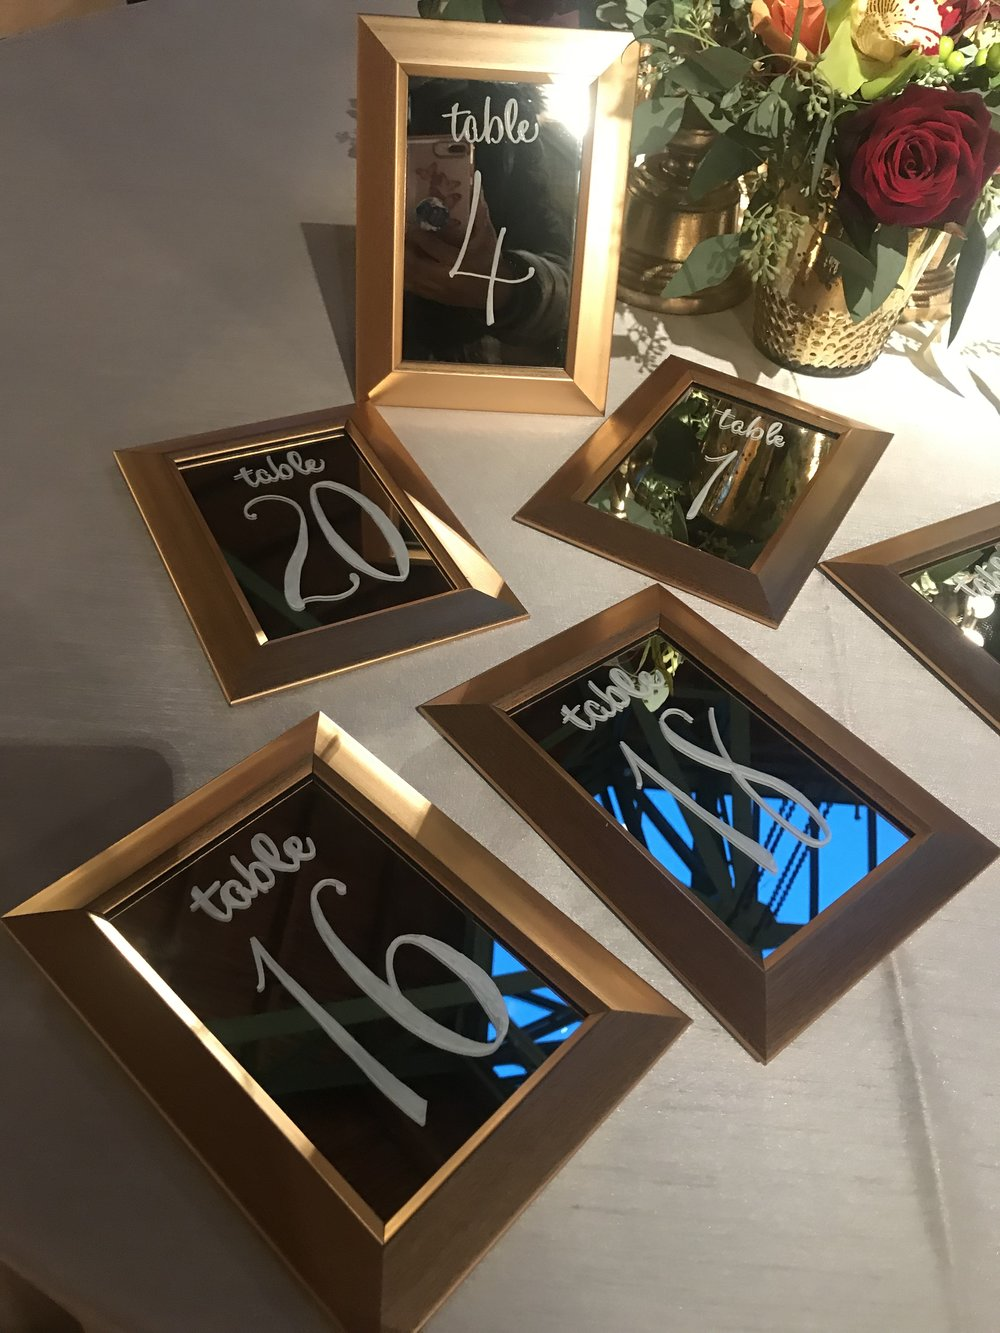 "4"" x 6"" Gold beveled frames with mirrors. Self easel. Perfect for your tables. $3.25 ea + lettering. 